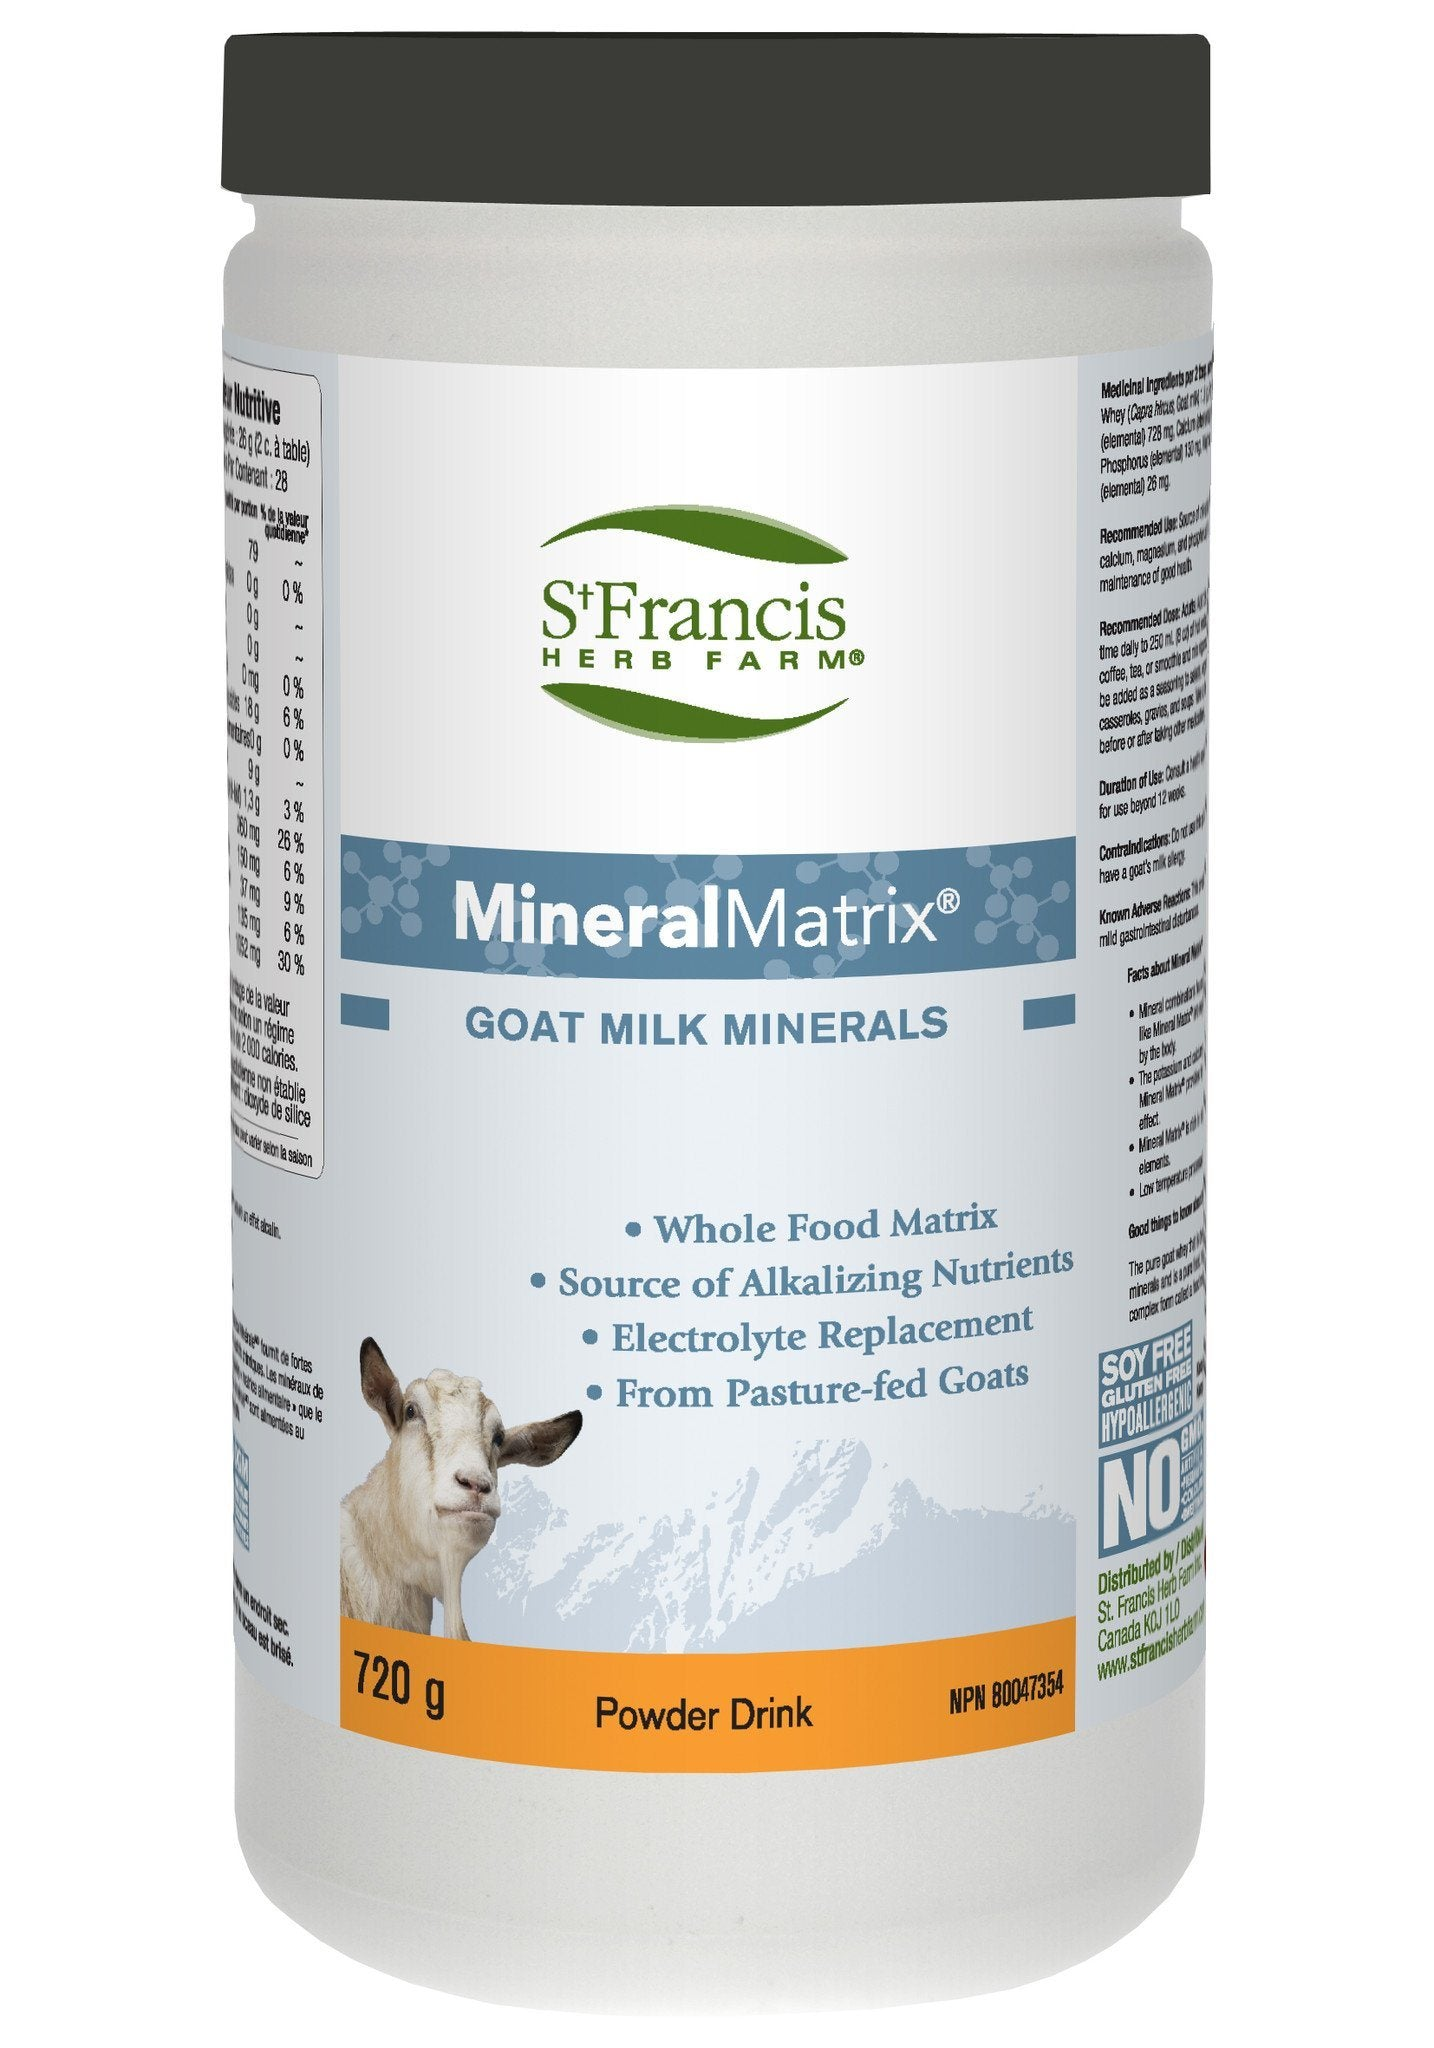 Supplements & Vitamins - St. Francis - Mineral Matrix, 720g